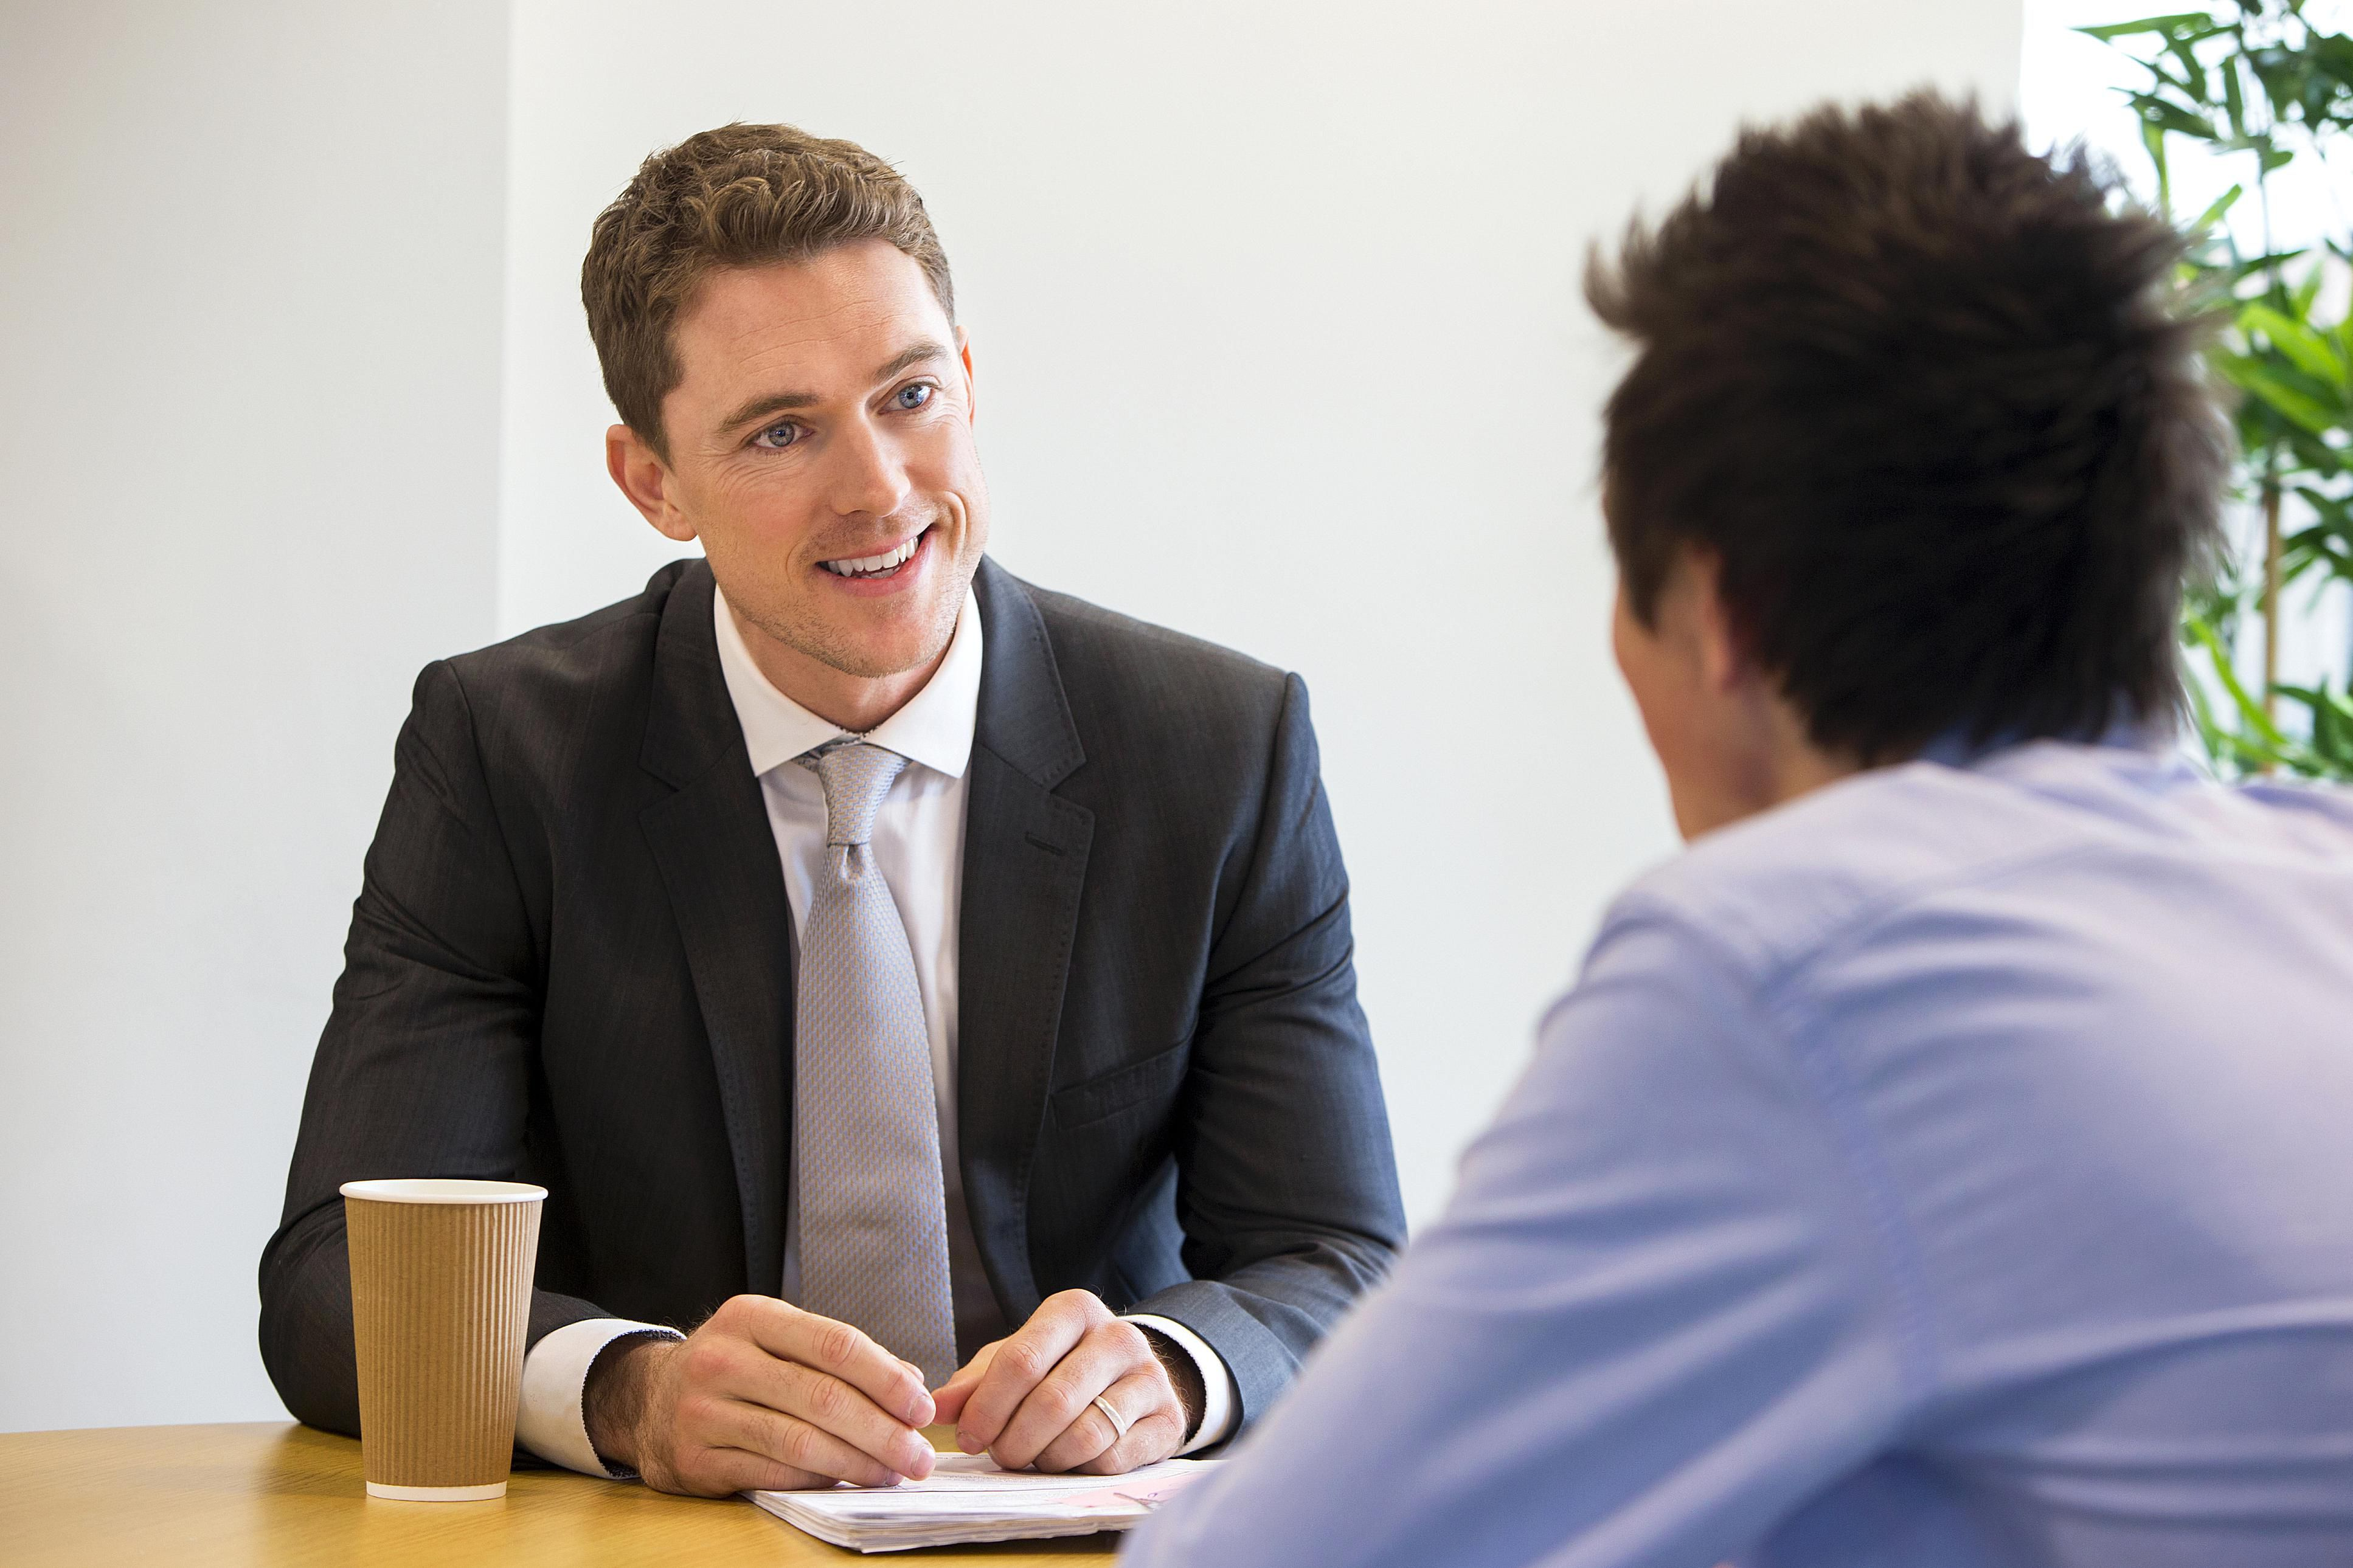 college interview College interviews can be conducted by a member of the admissions staff, an alumnus/alumna, or even a current student an interview request is often the first communication received by the student after submitting a college application.